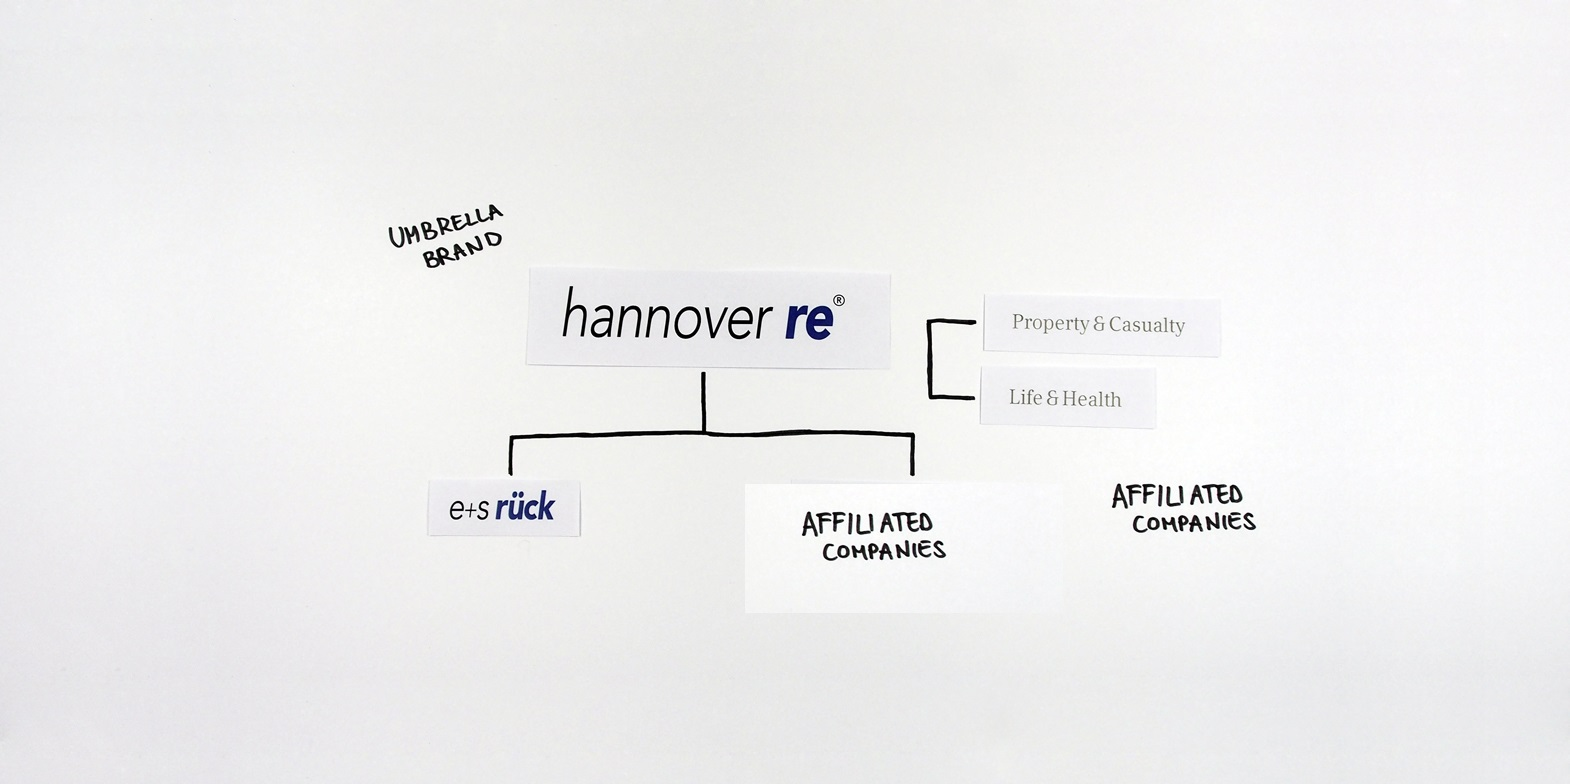 Hannover Re brand structure